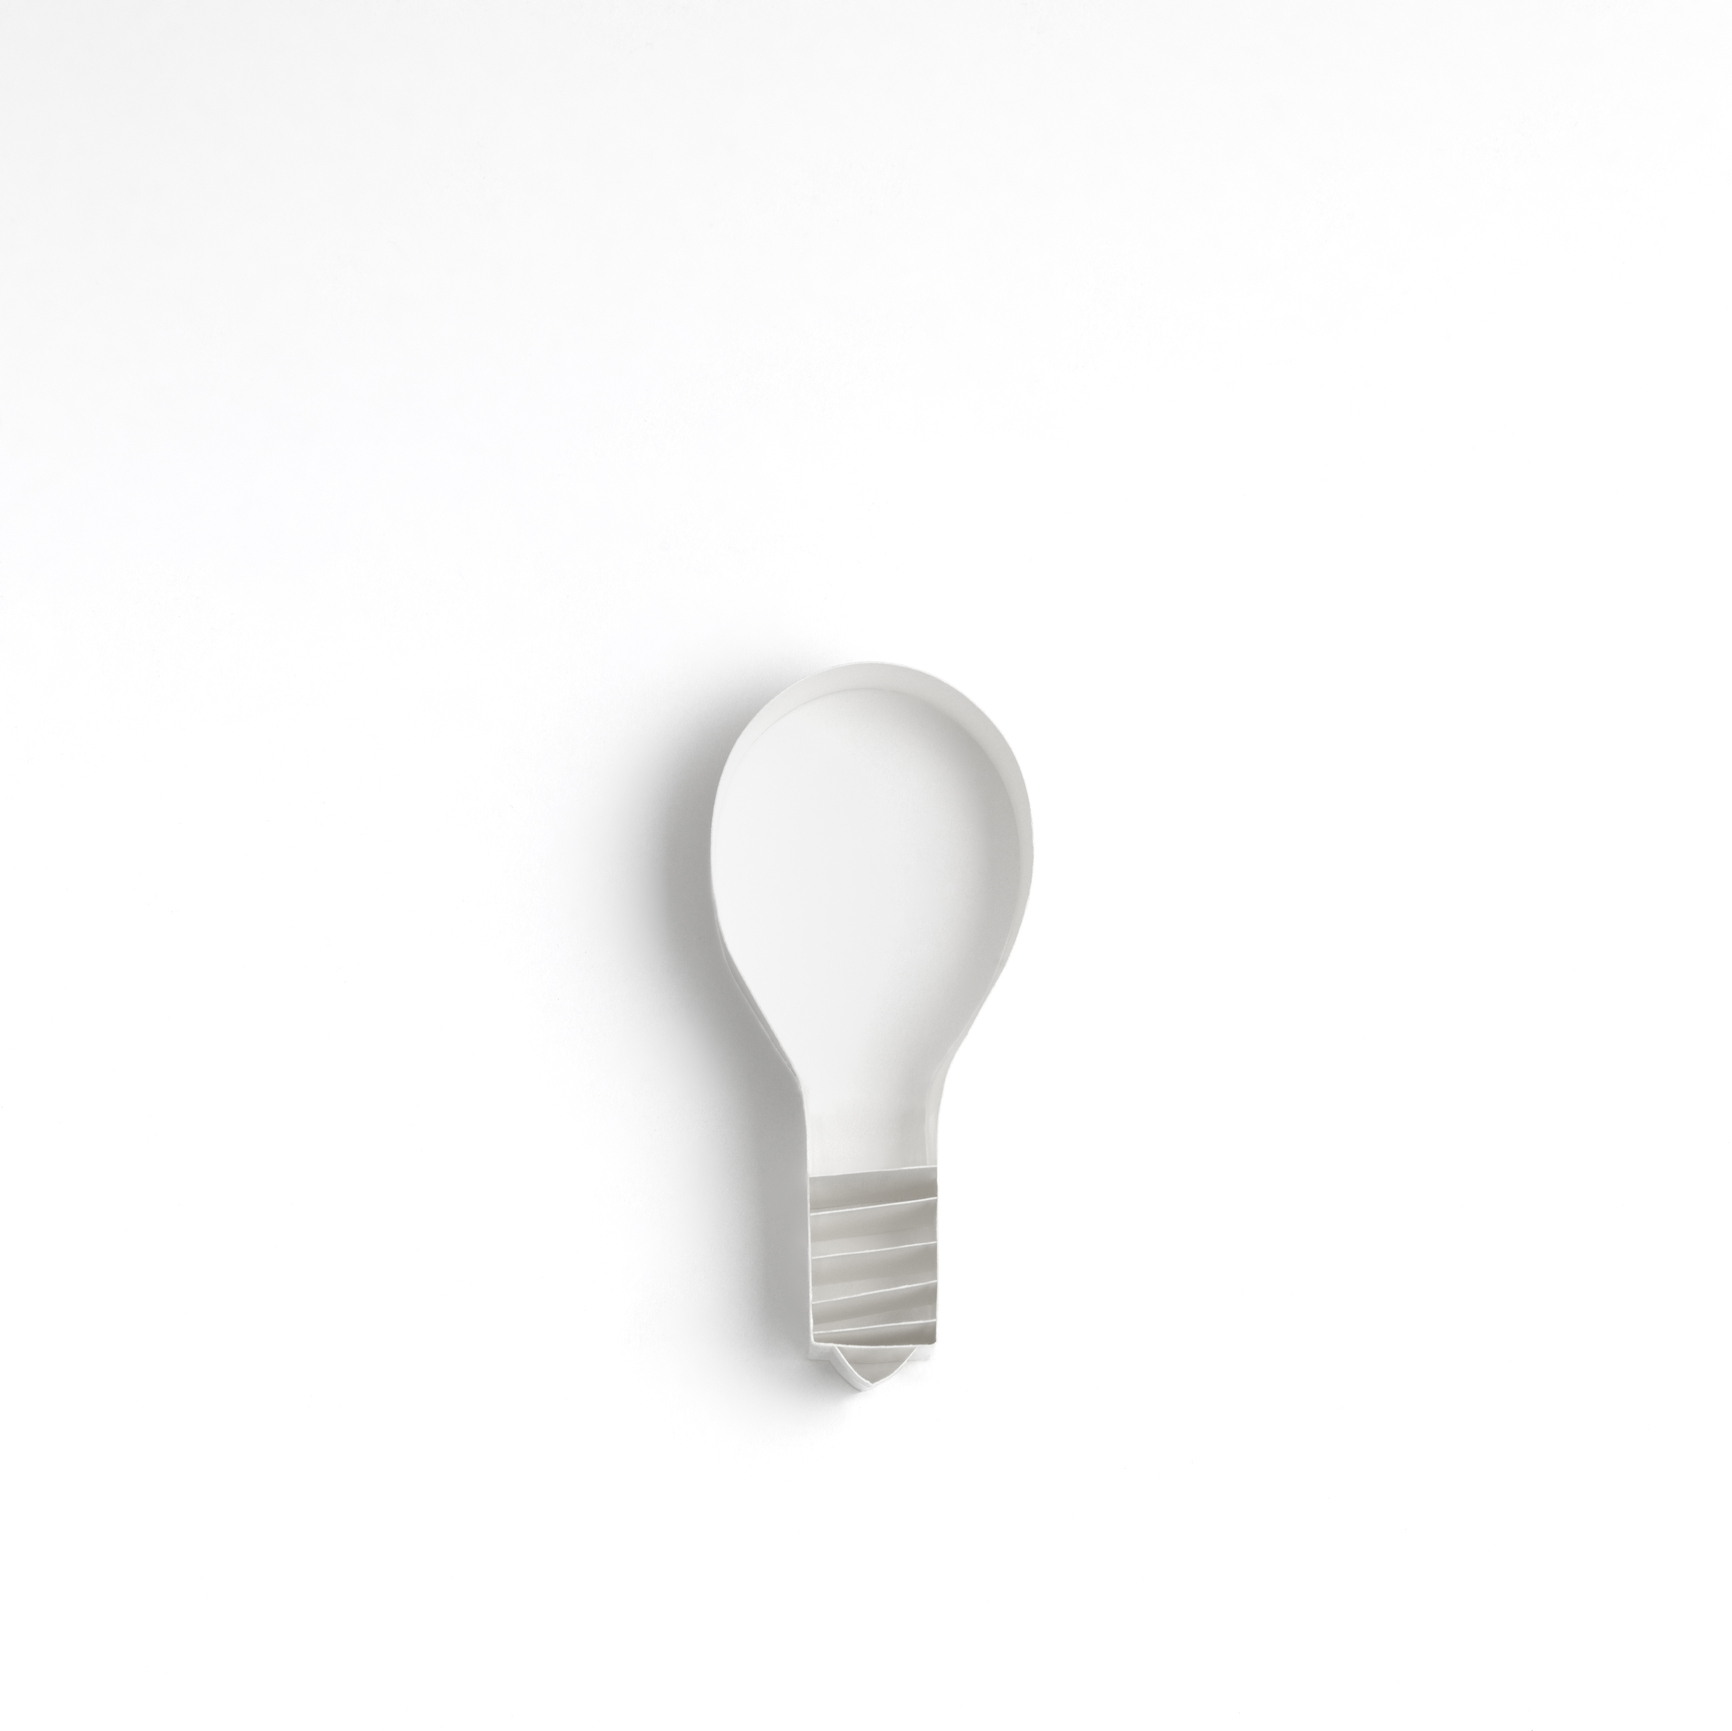 electric light bulb folded out of paper, origami style